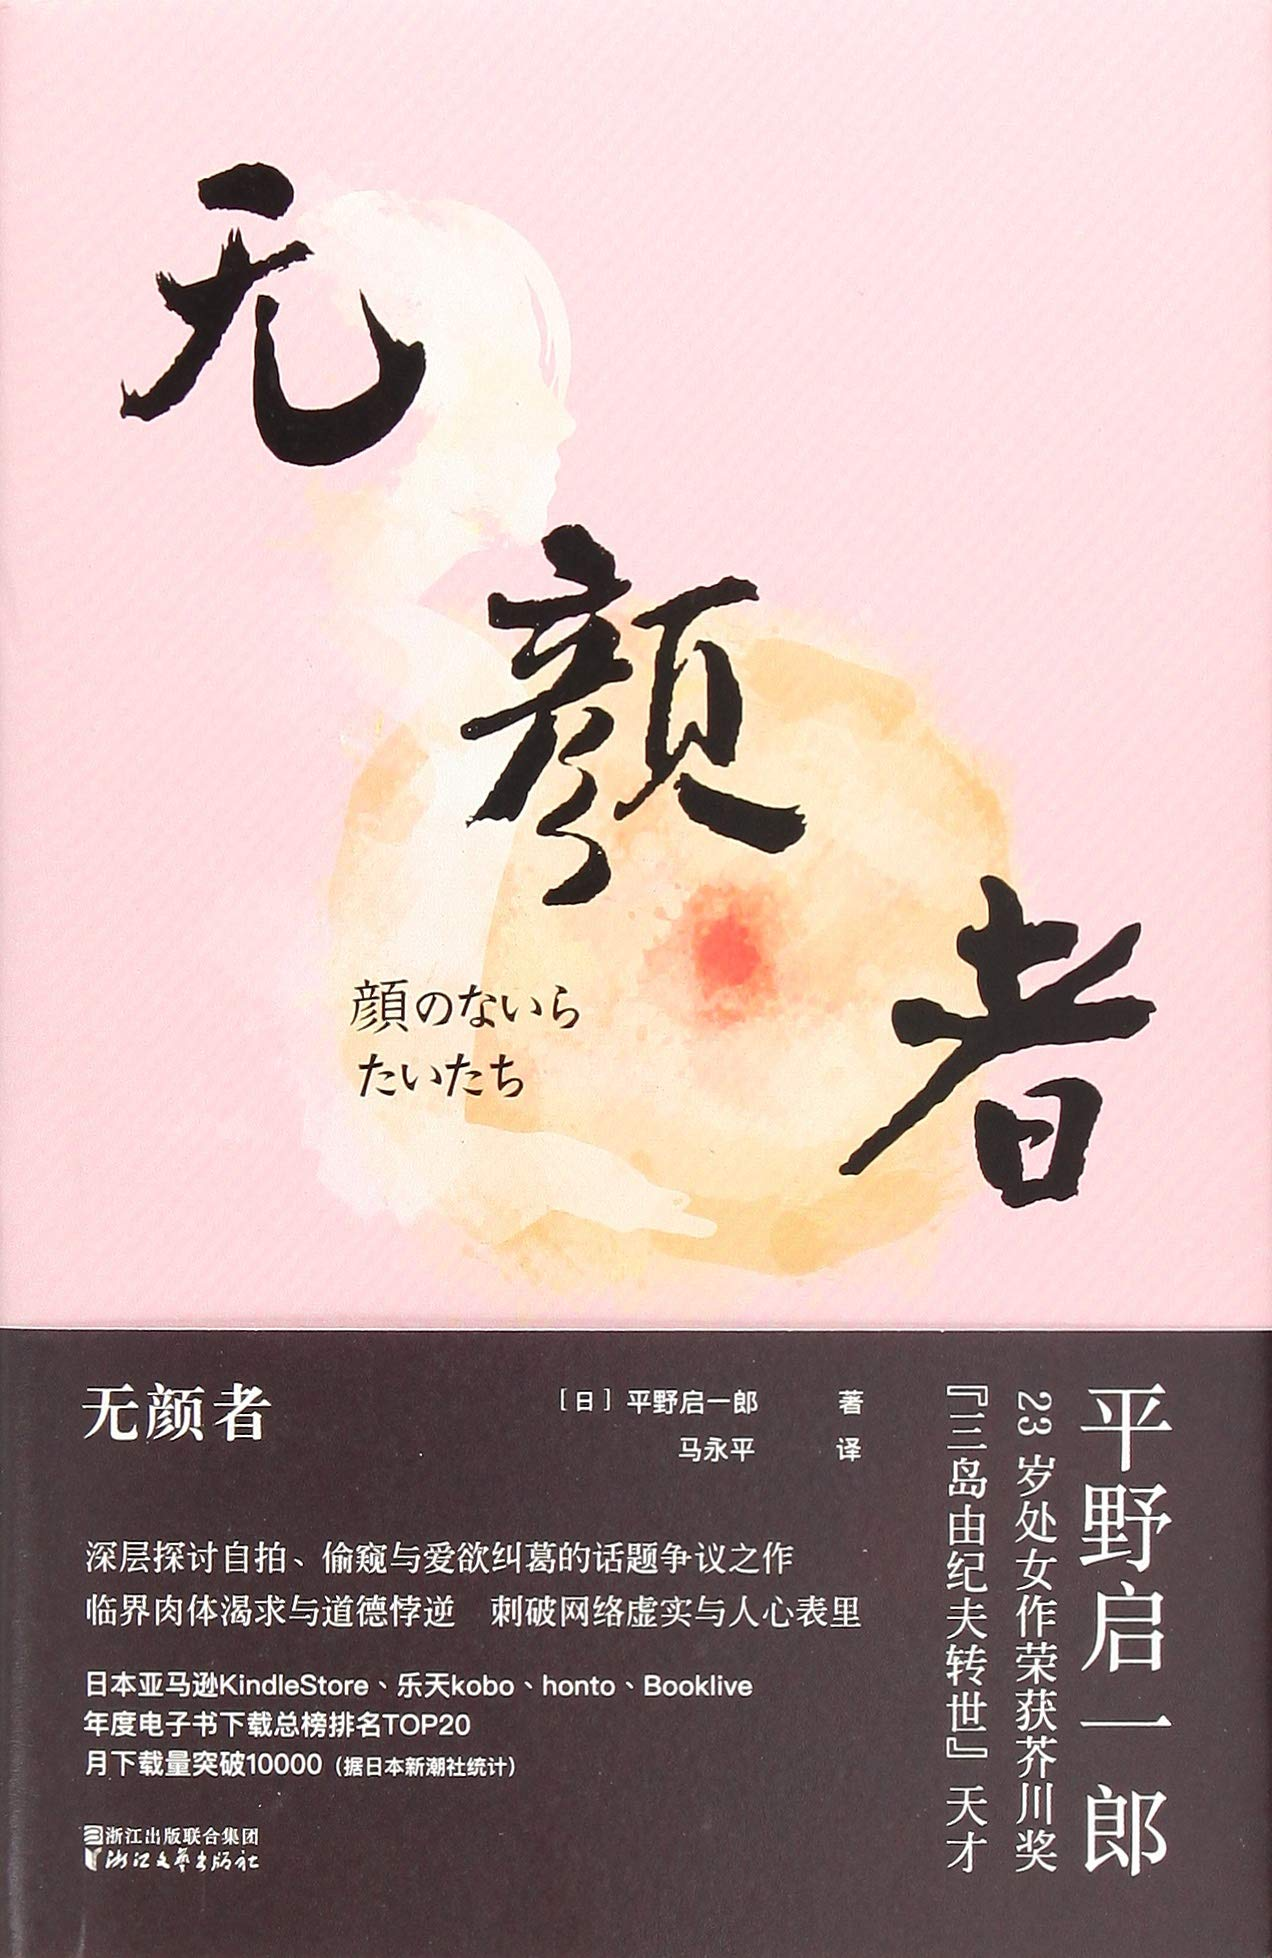 Simplified Chinese《Nudes Without Faces》